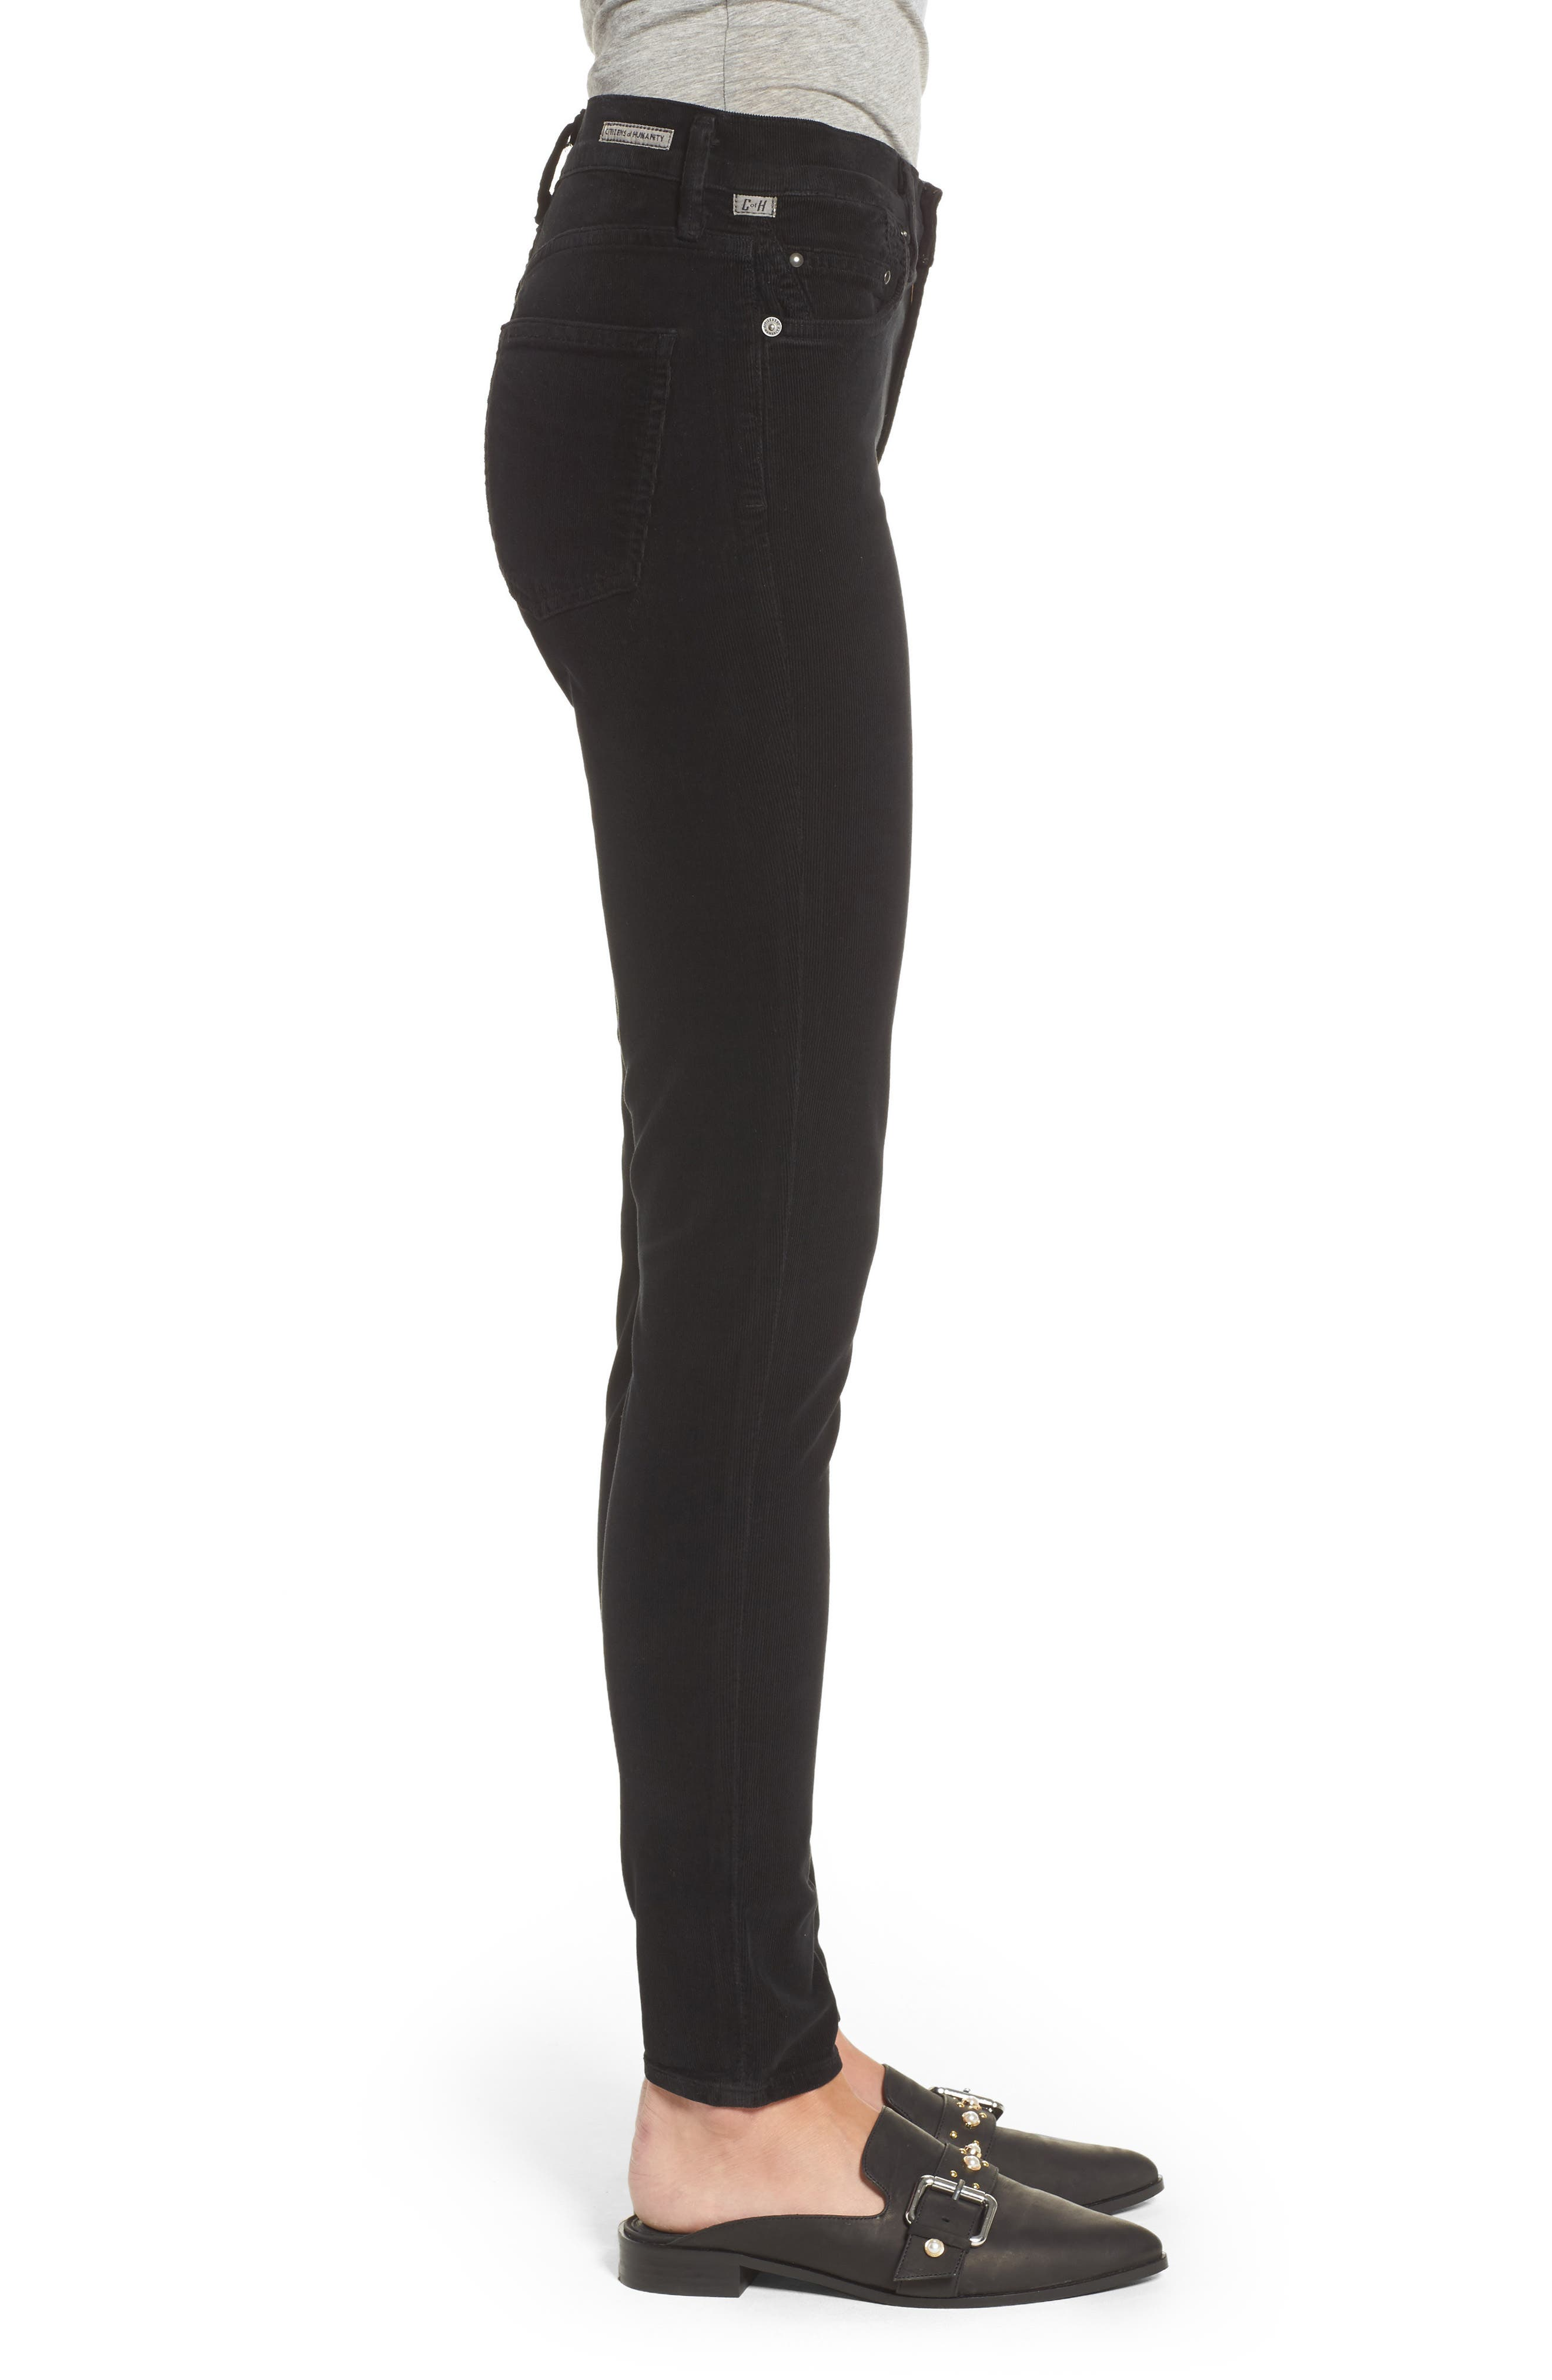 Rocket High Waist Skinny Corduroy Pants,                             Alternate thumbnail 3, color,                             Black Cord